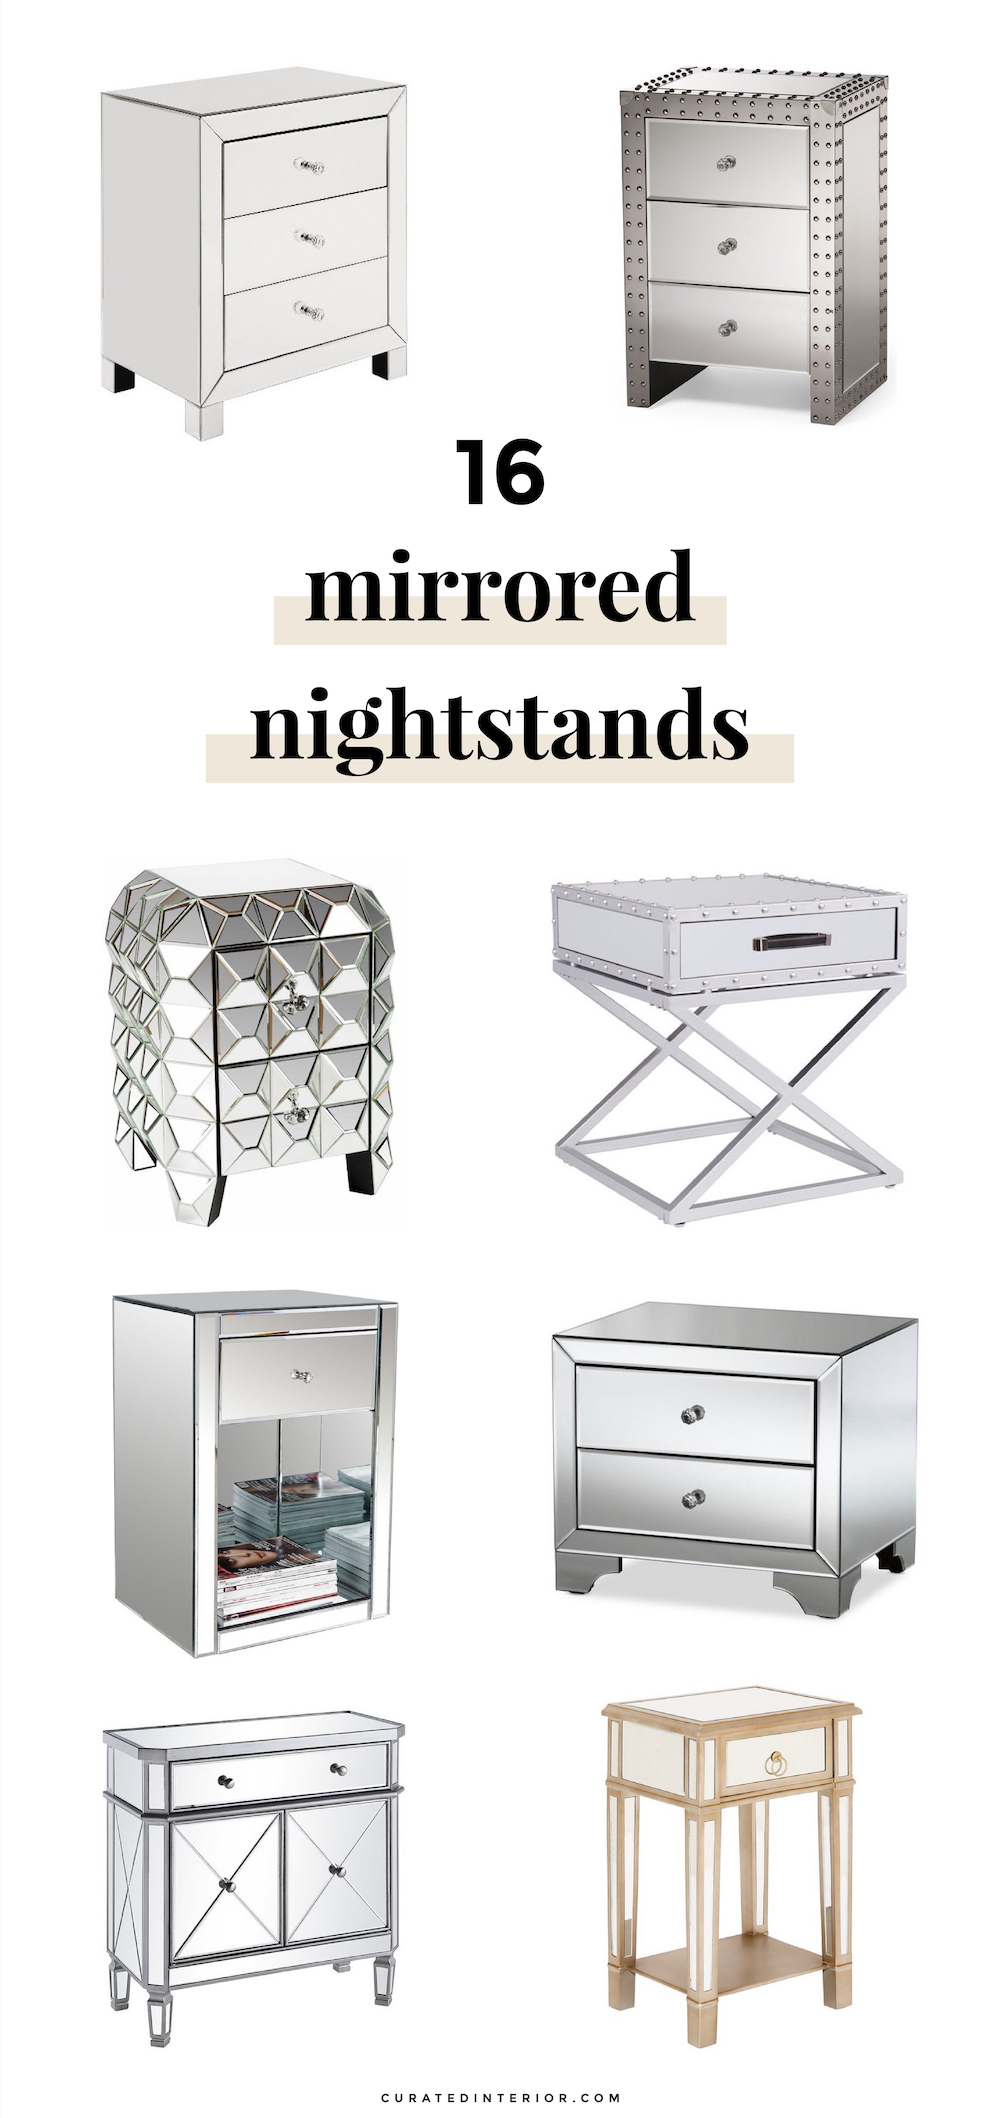 Mirrored Nightstands for a Glamorous Bedroom